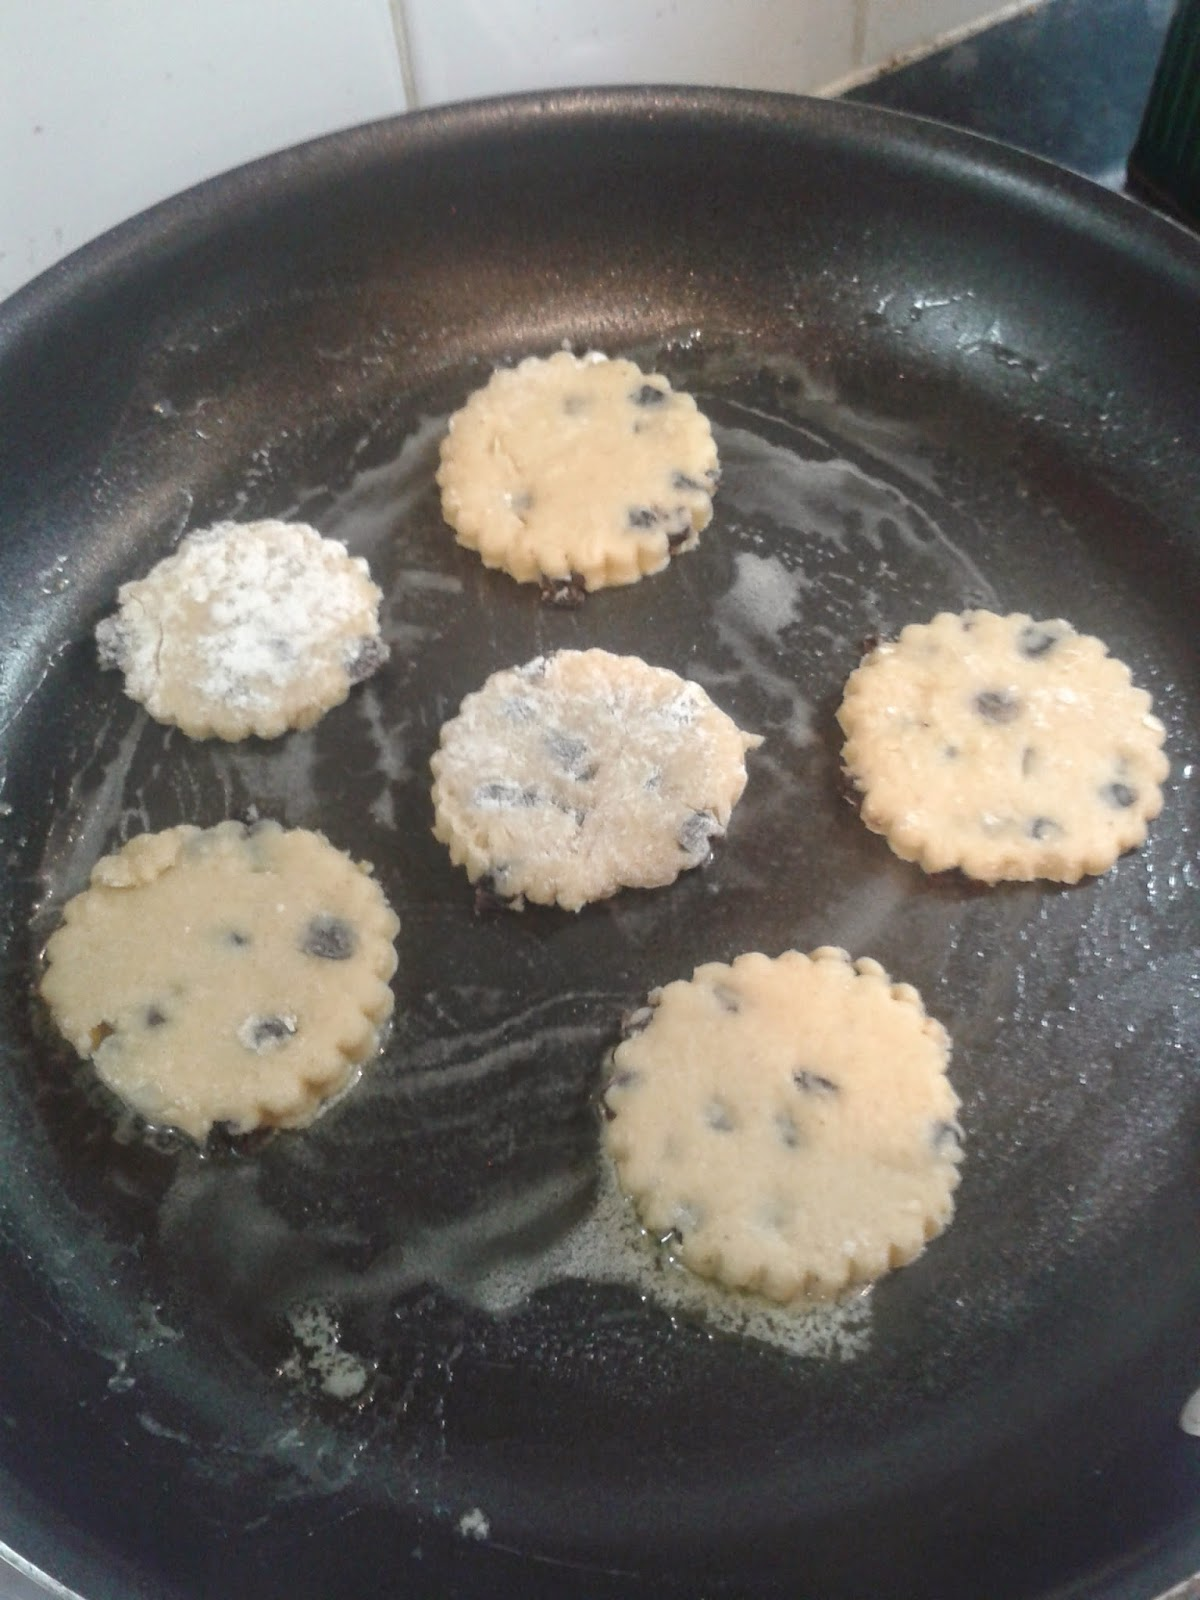 Welsh cakes recipe - Welsh cakes cooking on the hob